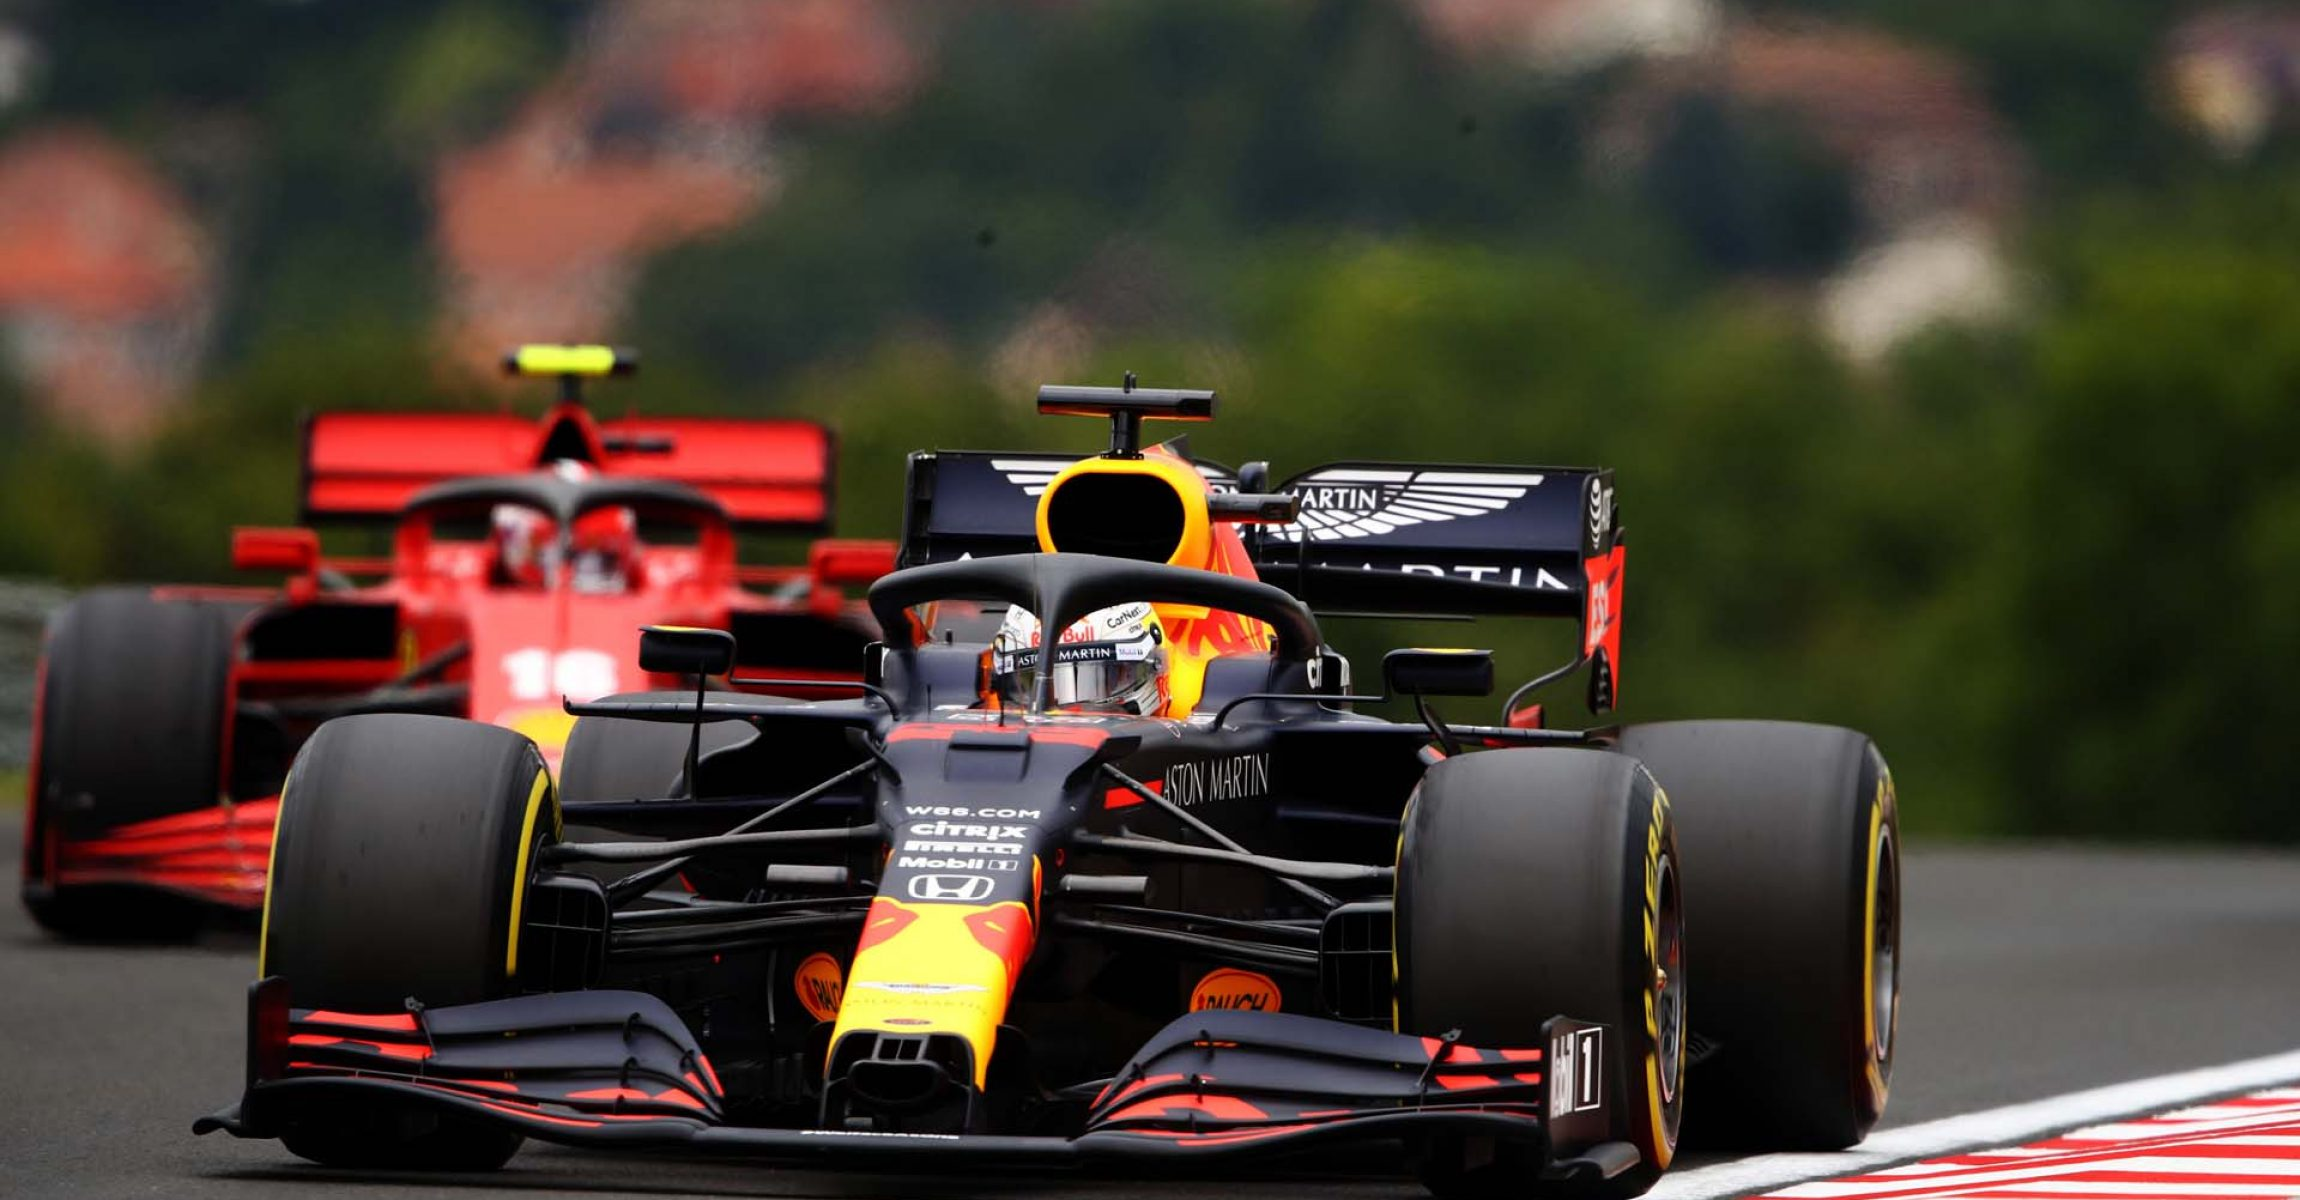 BUDAPEST, HUNGARY - JULY 18: Max Verstappen of the Netherlands driving the (33) Aston Martin Red Bull Racing RB16 on track during final practice for the F1 Grand Prix of Hungary at Hungaroring on July 18, 2020 in Budapest, Hungary. (Photo by Bryn Lennon/Getty Images) // Getty Images / Red Bull Content Pool  // AP-24NU2D2B52111 // Usage for editorial use only // Ferrari Charles Leclerc